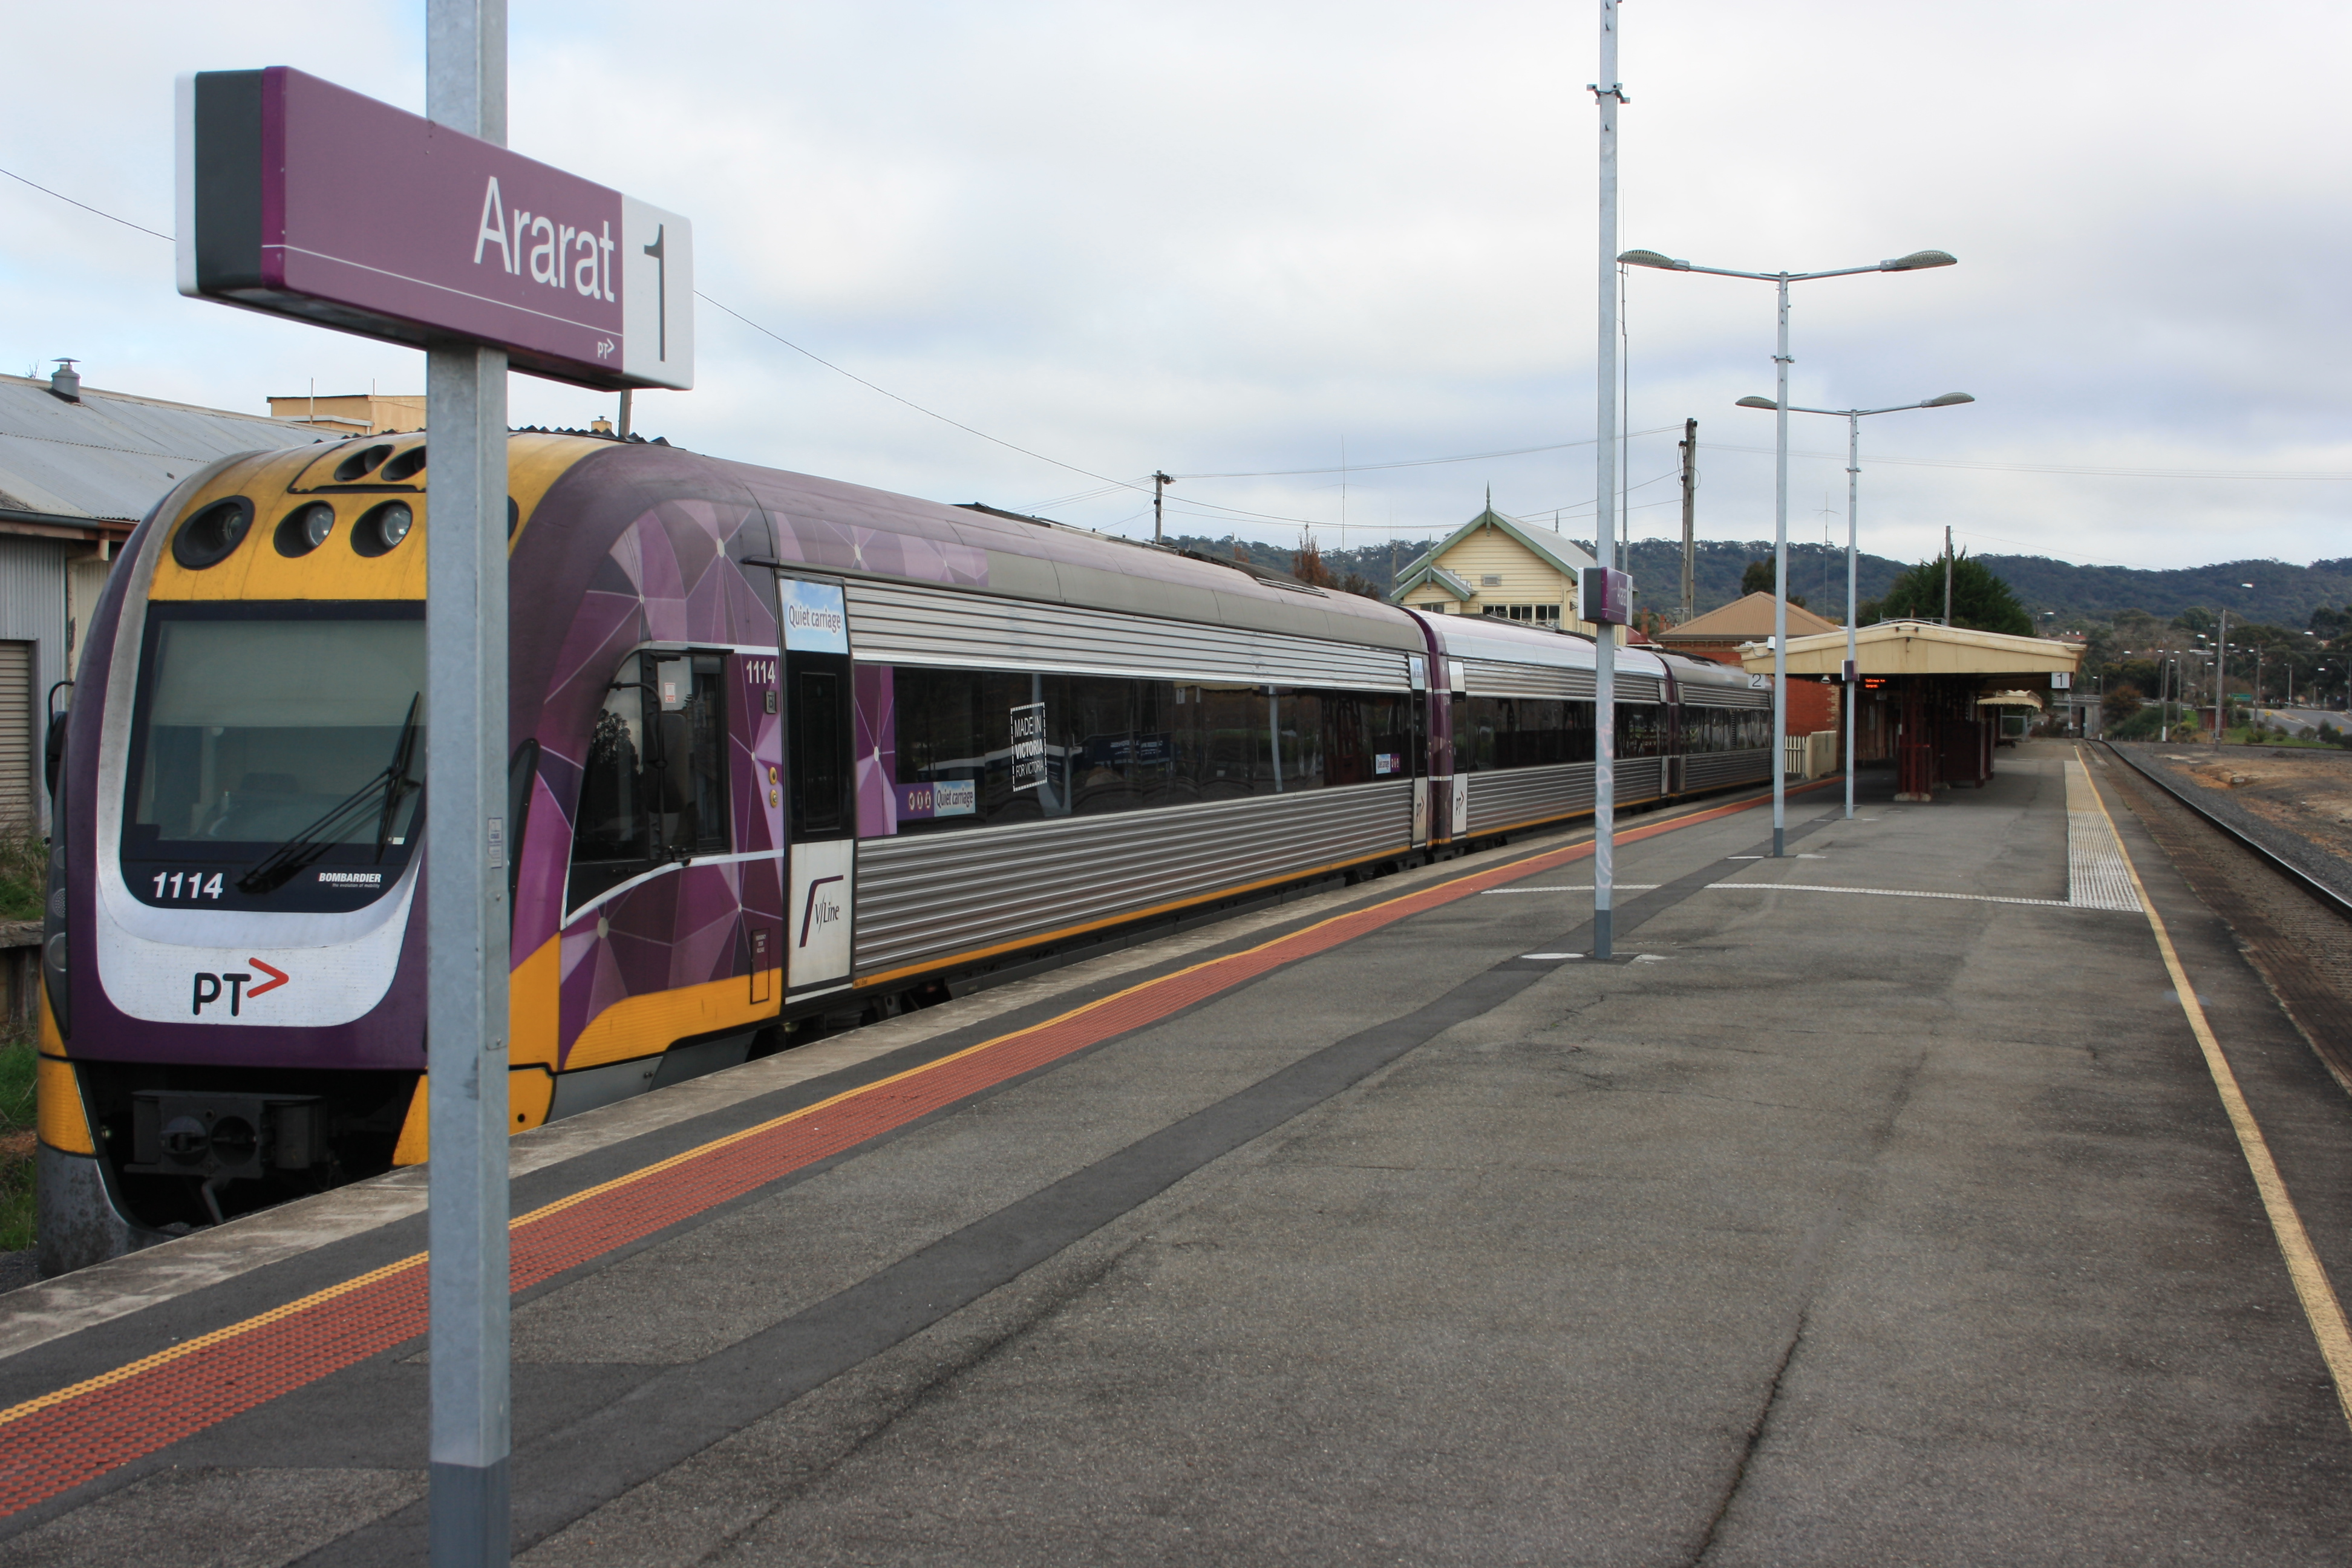 Announcements for Ararat passenger and freight rail services